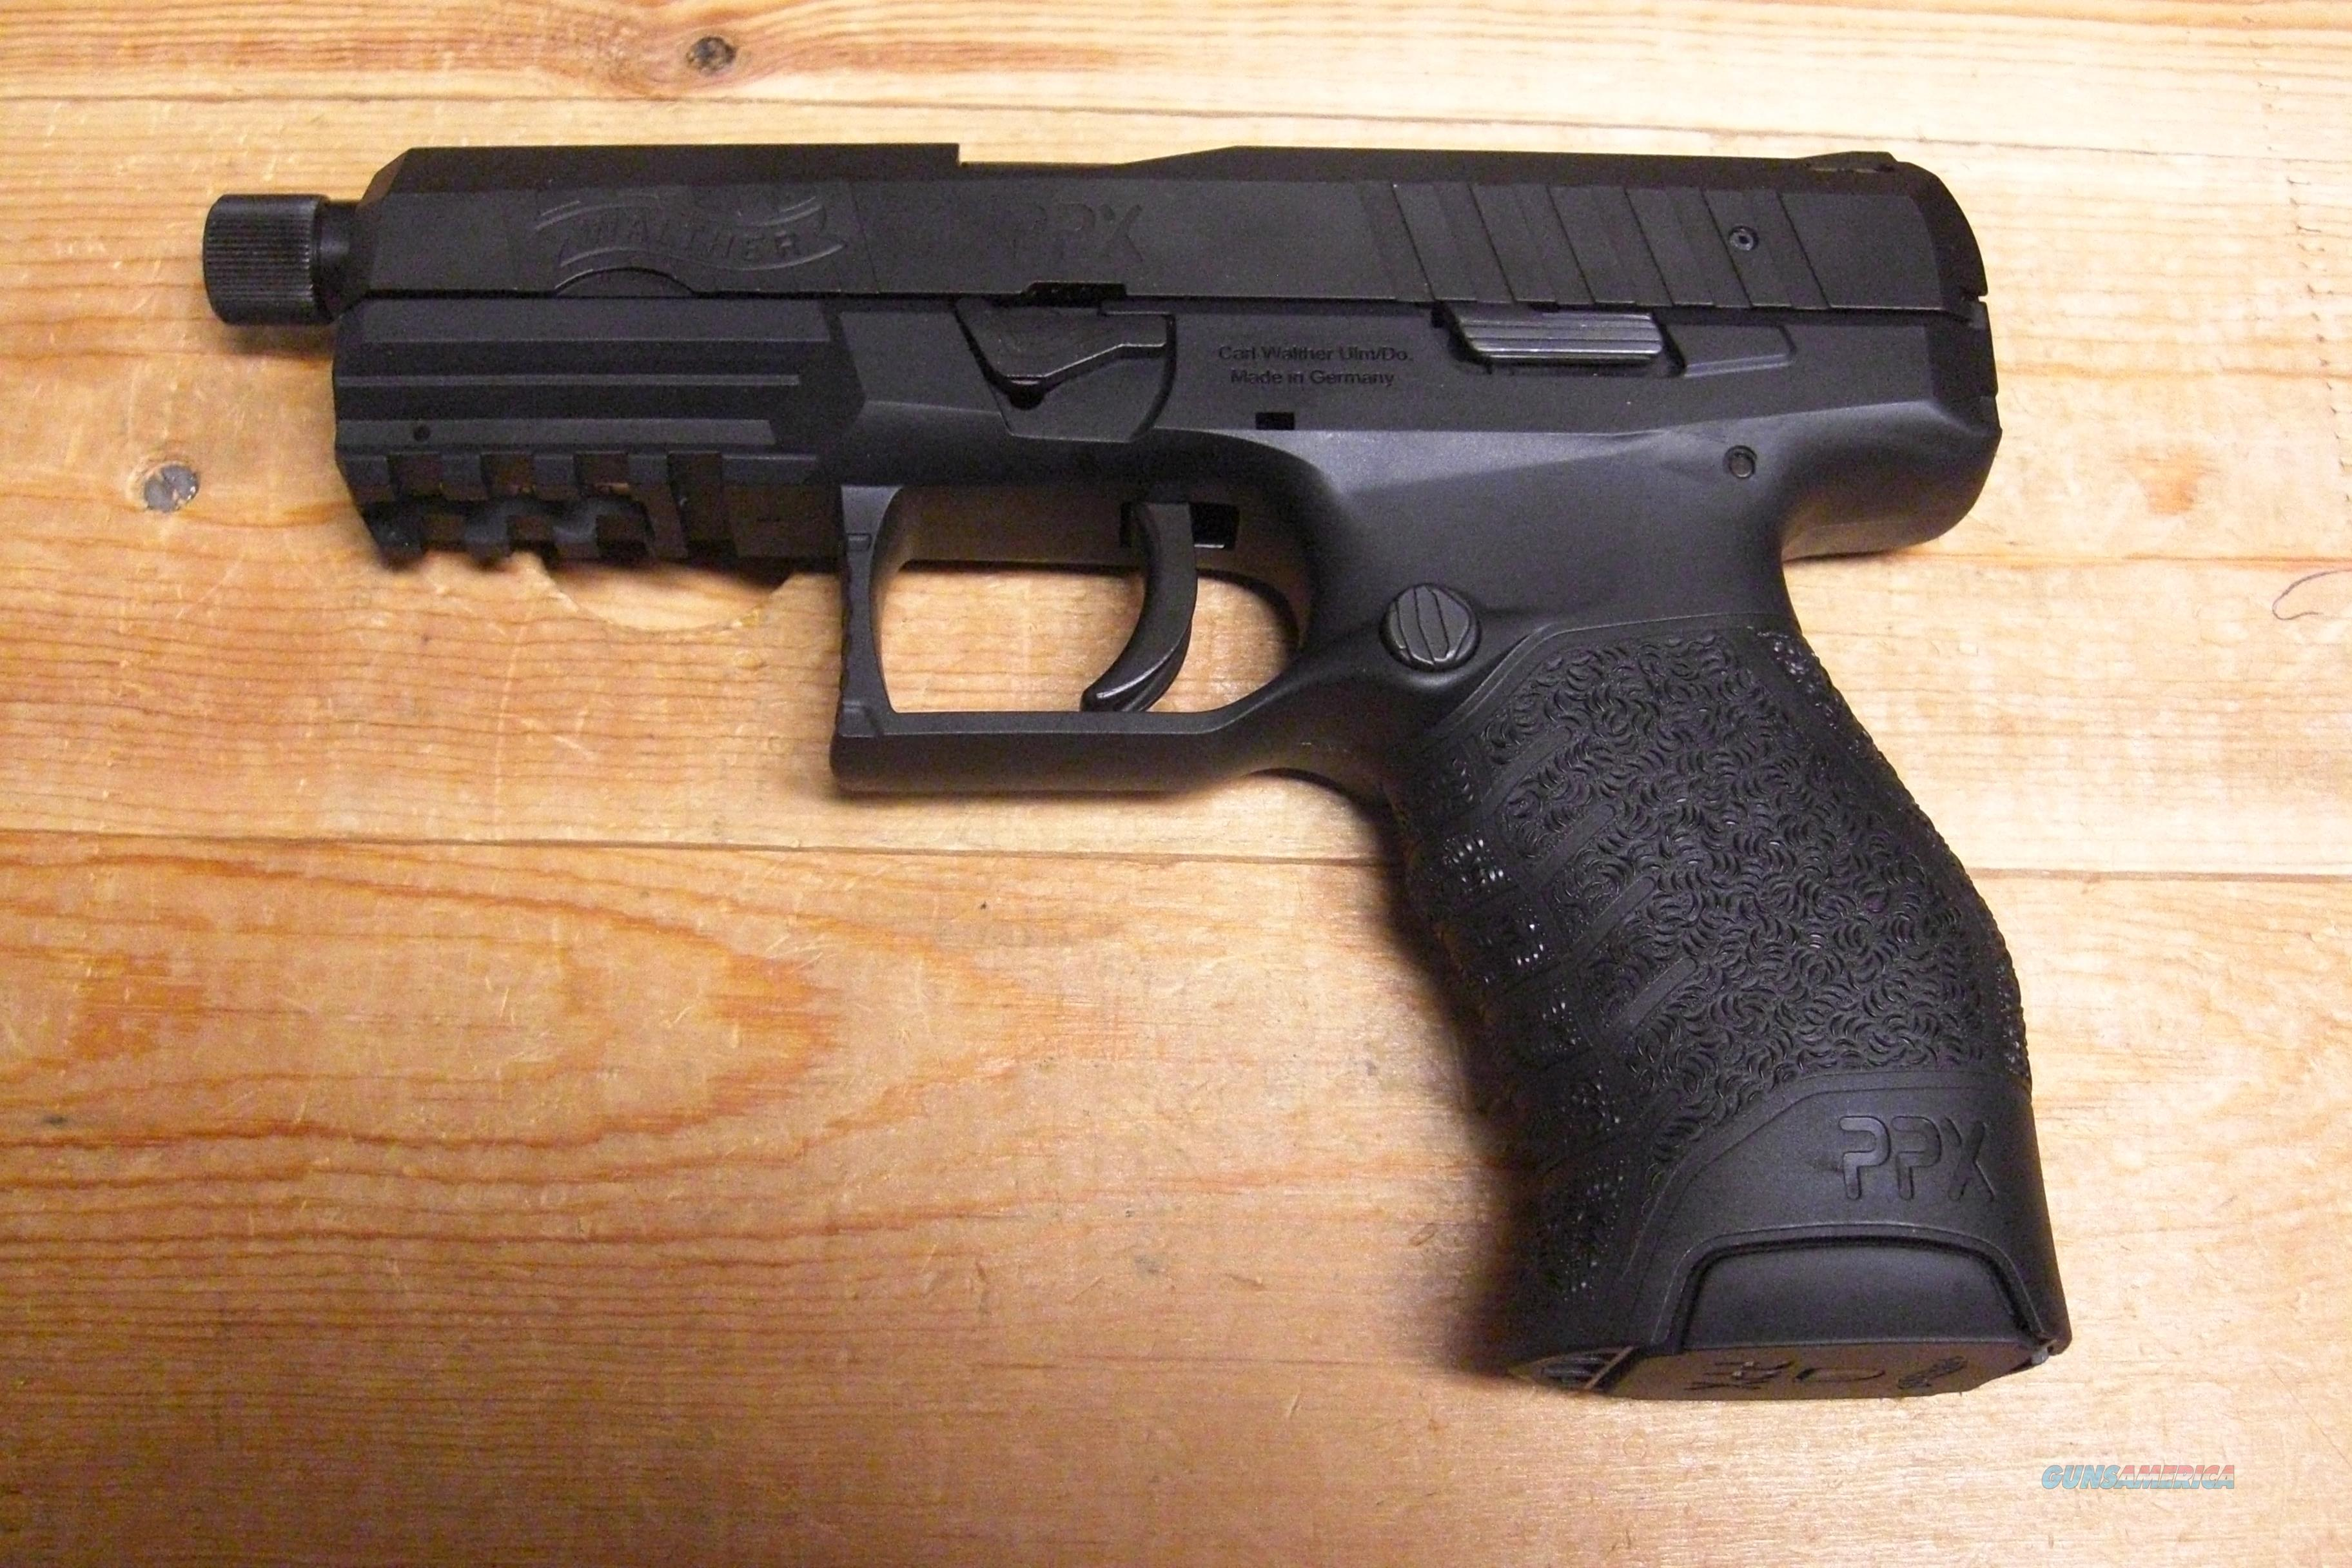 PPX  w/2 16 rd mags w/Threaded BBL:  Guns > Pistols > Walther Pistols > Post WWII > P99/PPQ